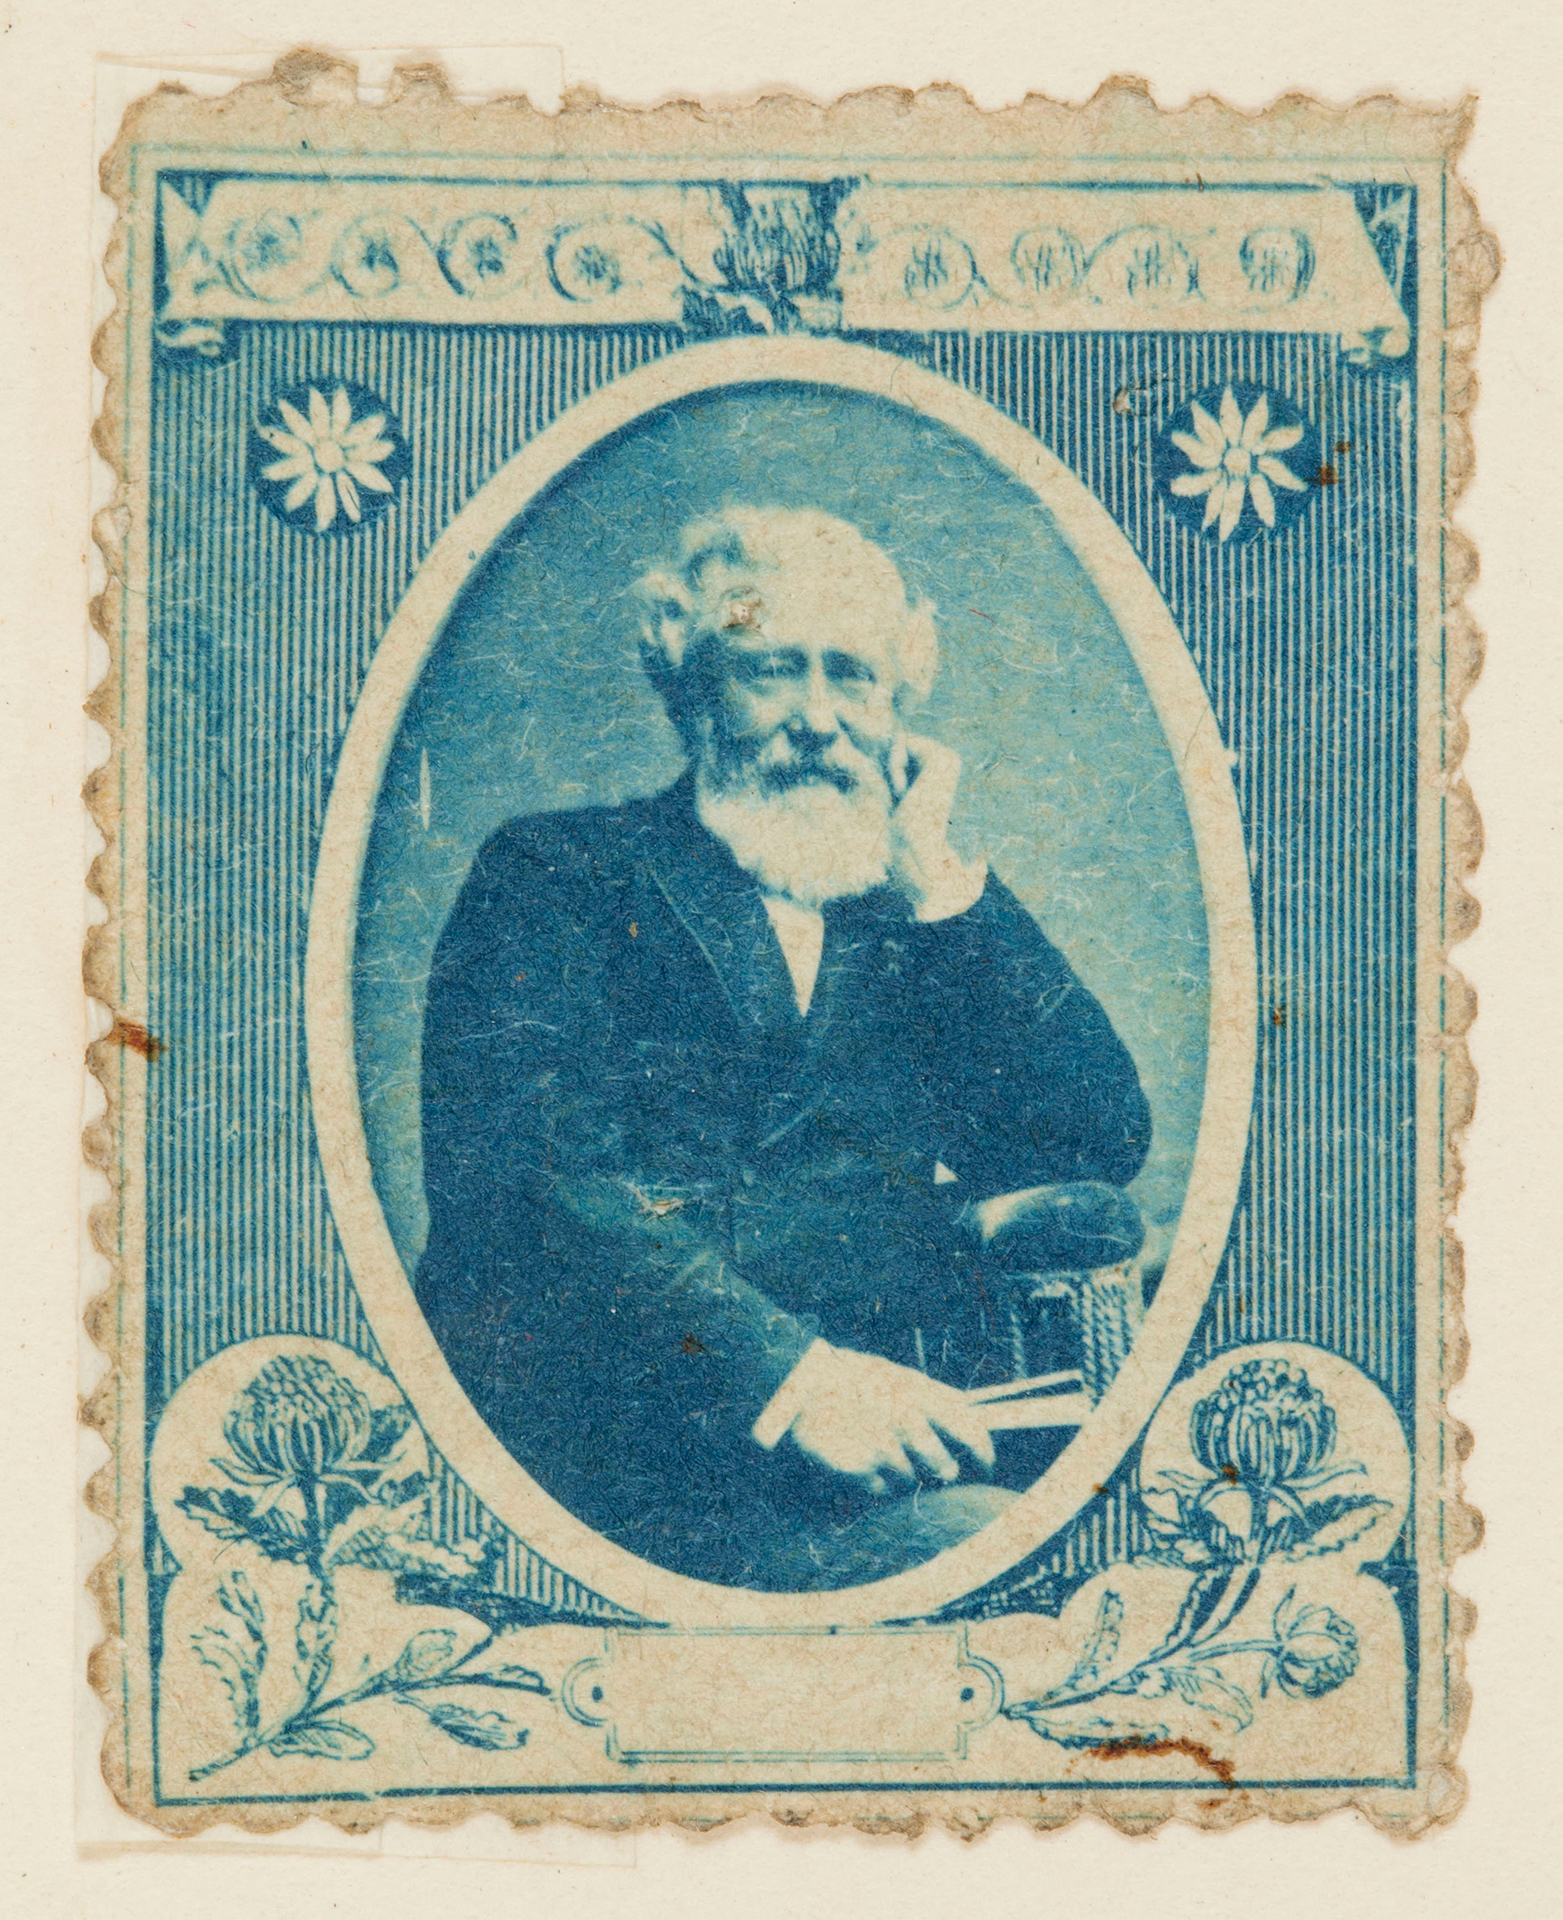 An old blue stamp with a portrait of a bearded man.